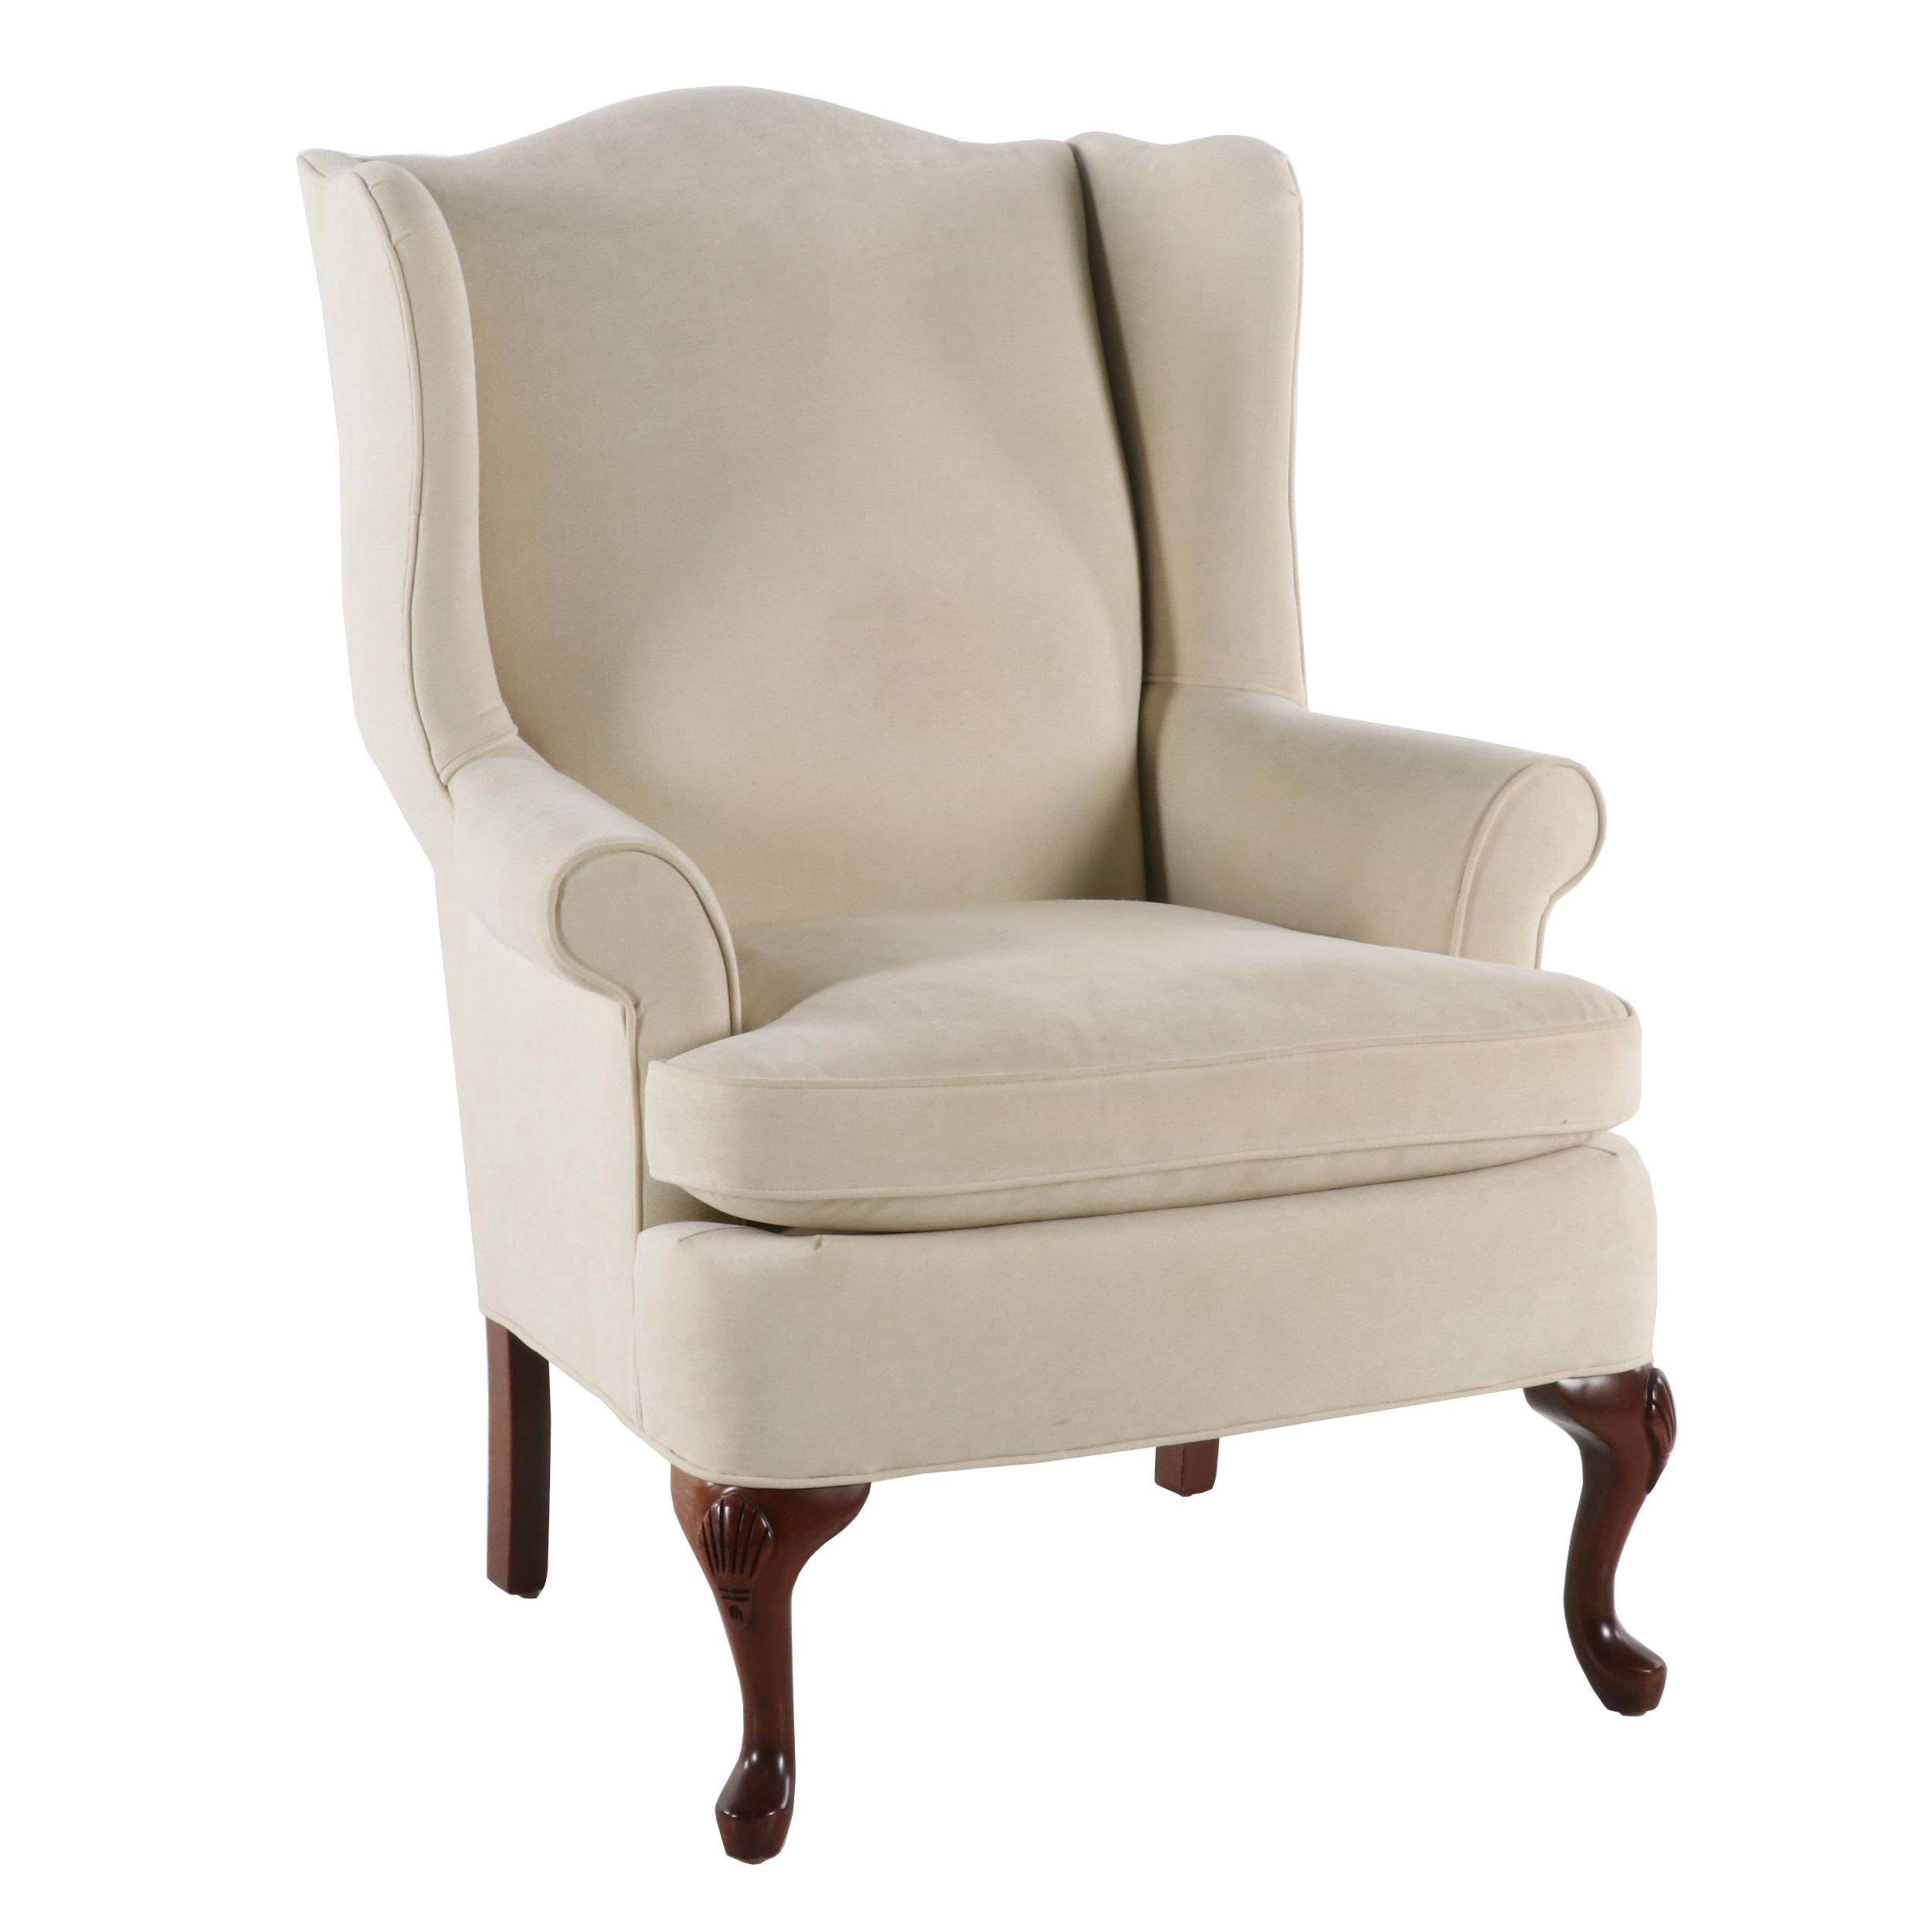 Contemporary Queen Anne Style Upholstered Wingback Chair